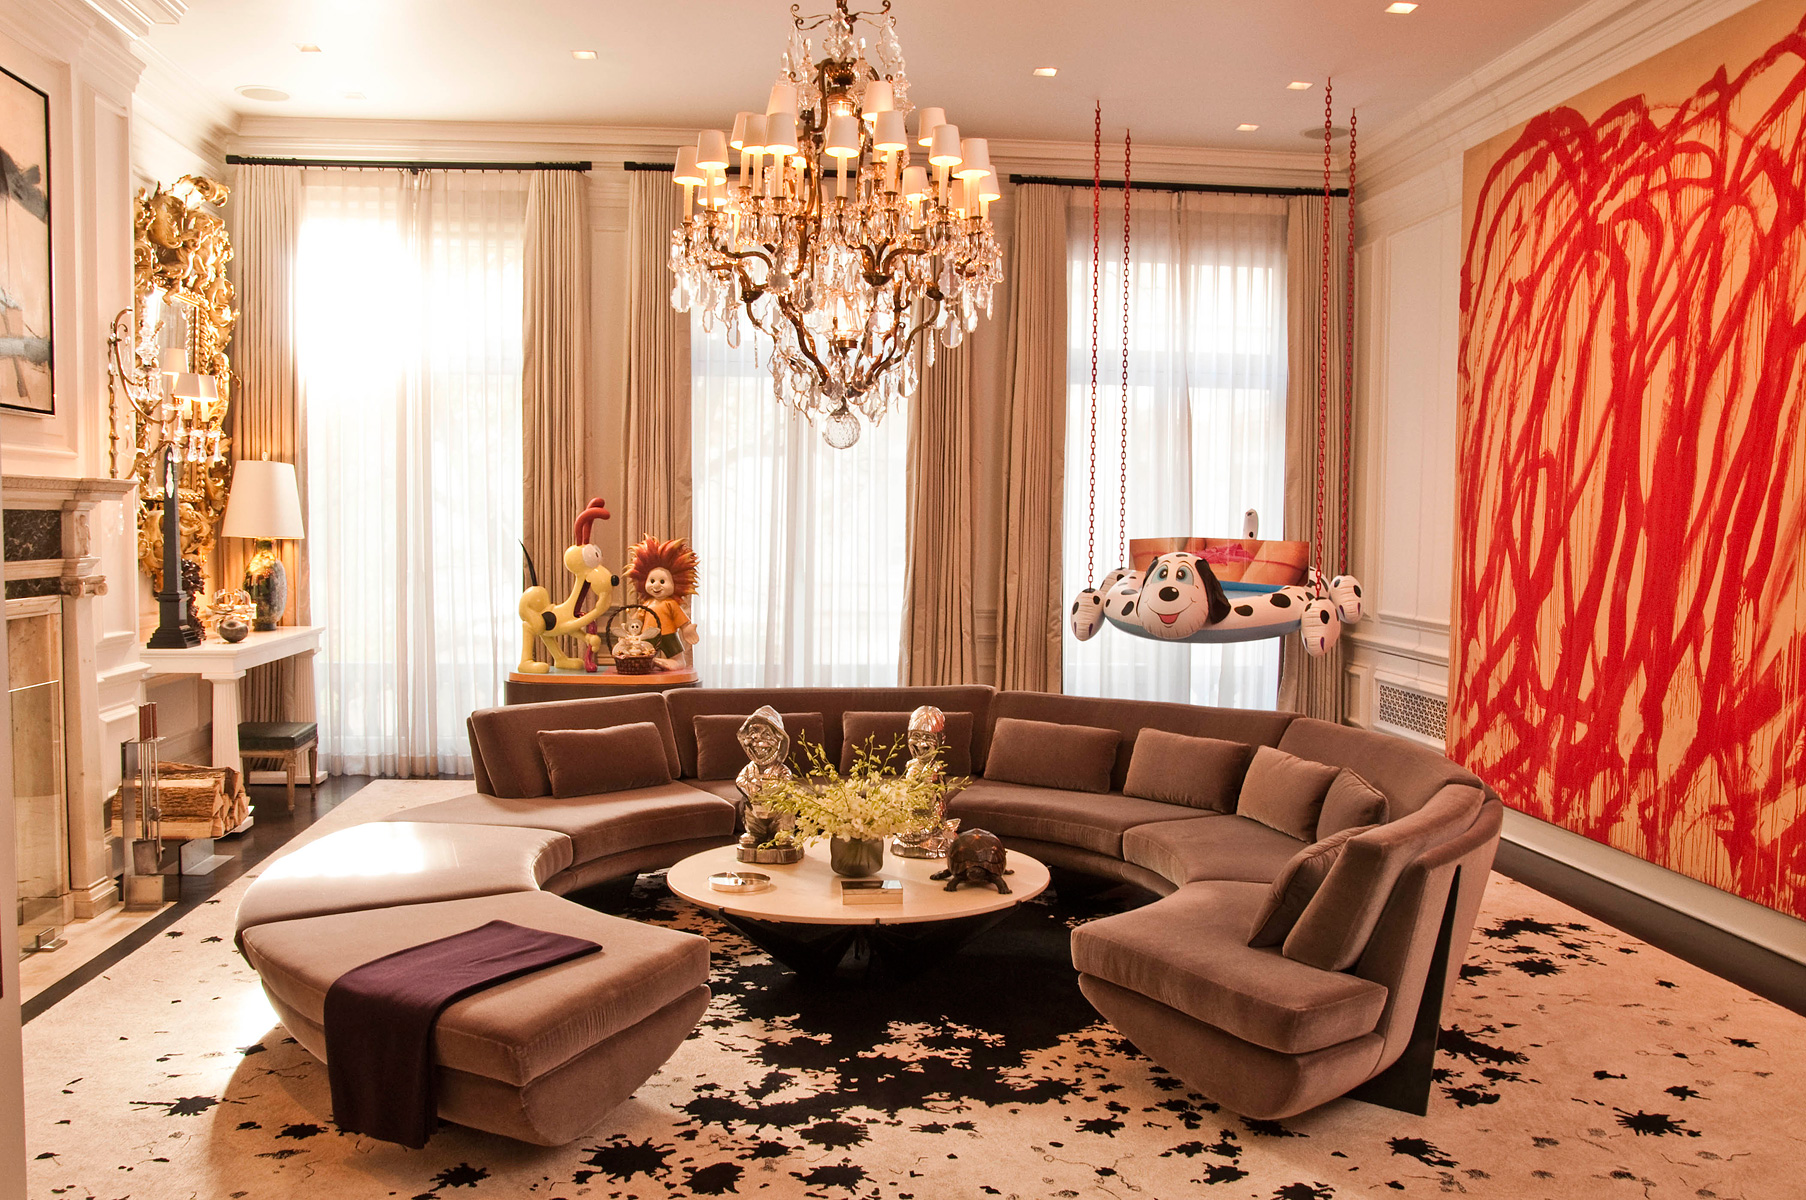 Featured Image of Classic And Luxury Apartment Living Room With Round Sofa And Crystal Chandelier